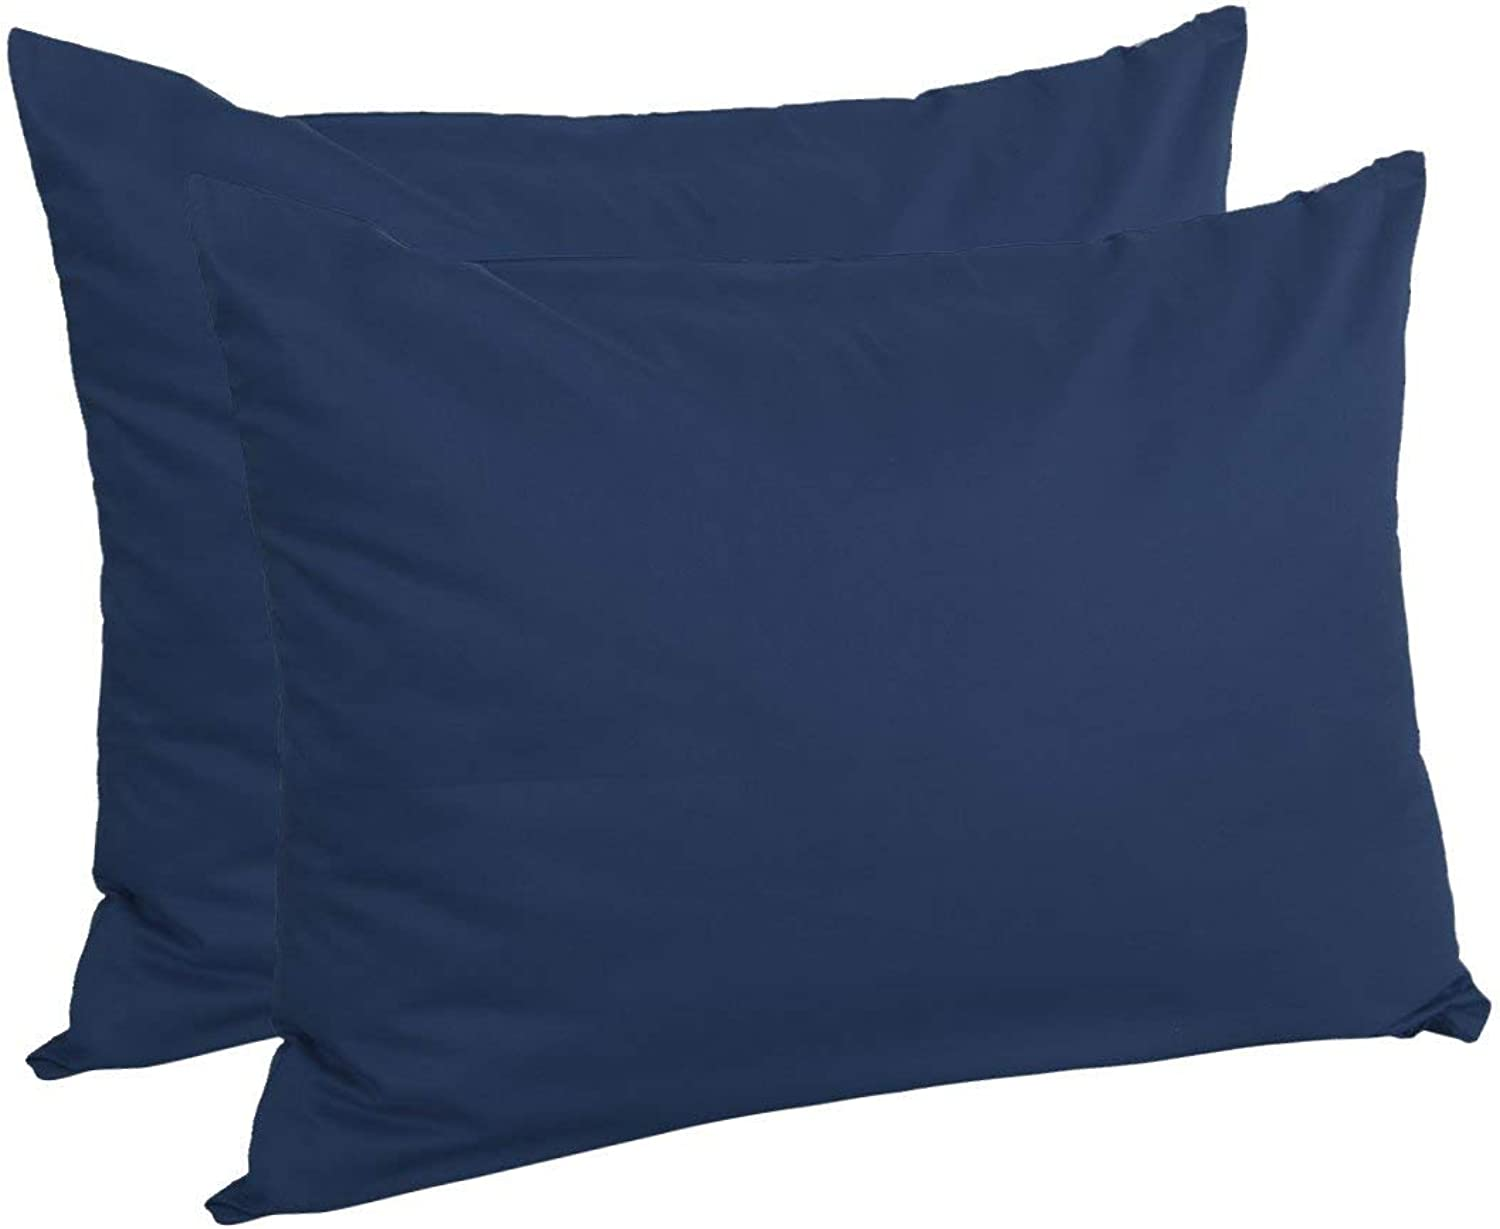 Standard (20\ x 26\), Navy bluee   Zippered Standard Pillow Cases Pillowcases Covers, Egyptian Cotton 300 Thread Count, 20 x 26 Inch, Navy bluee, Set of 2